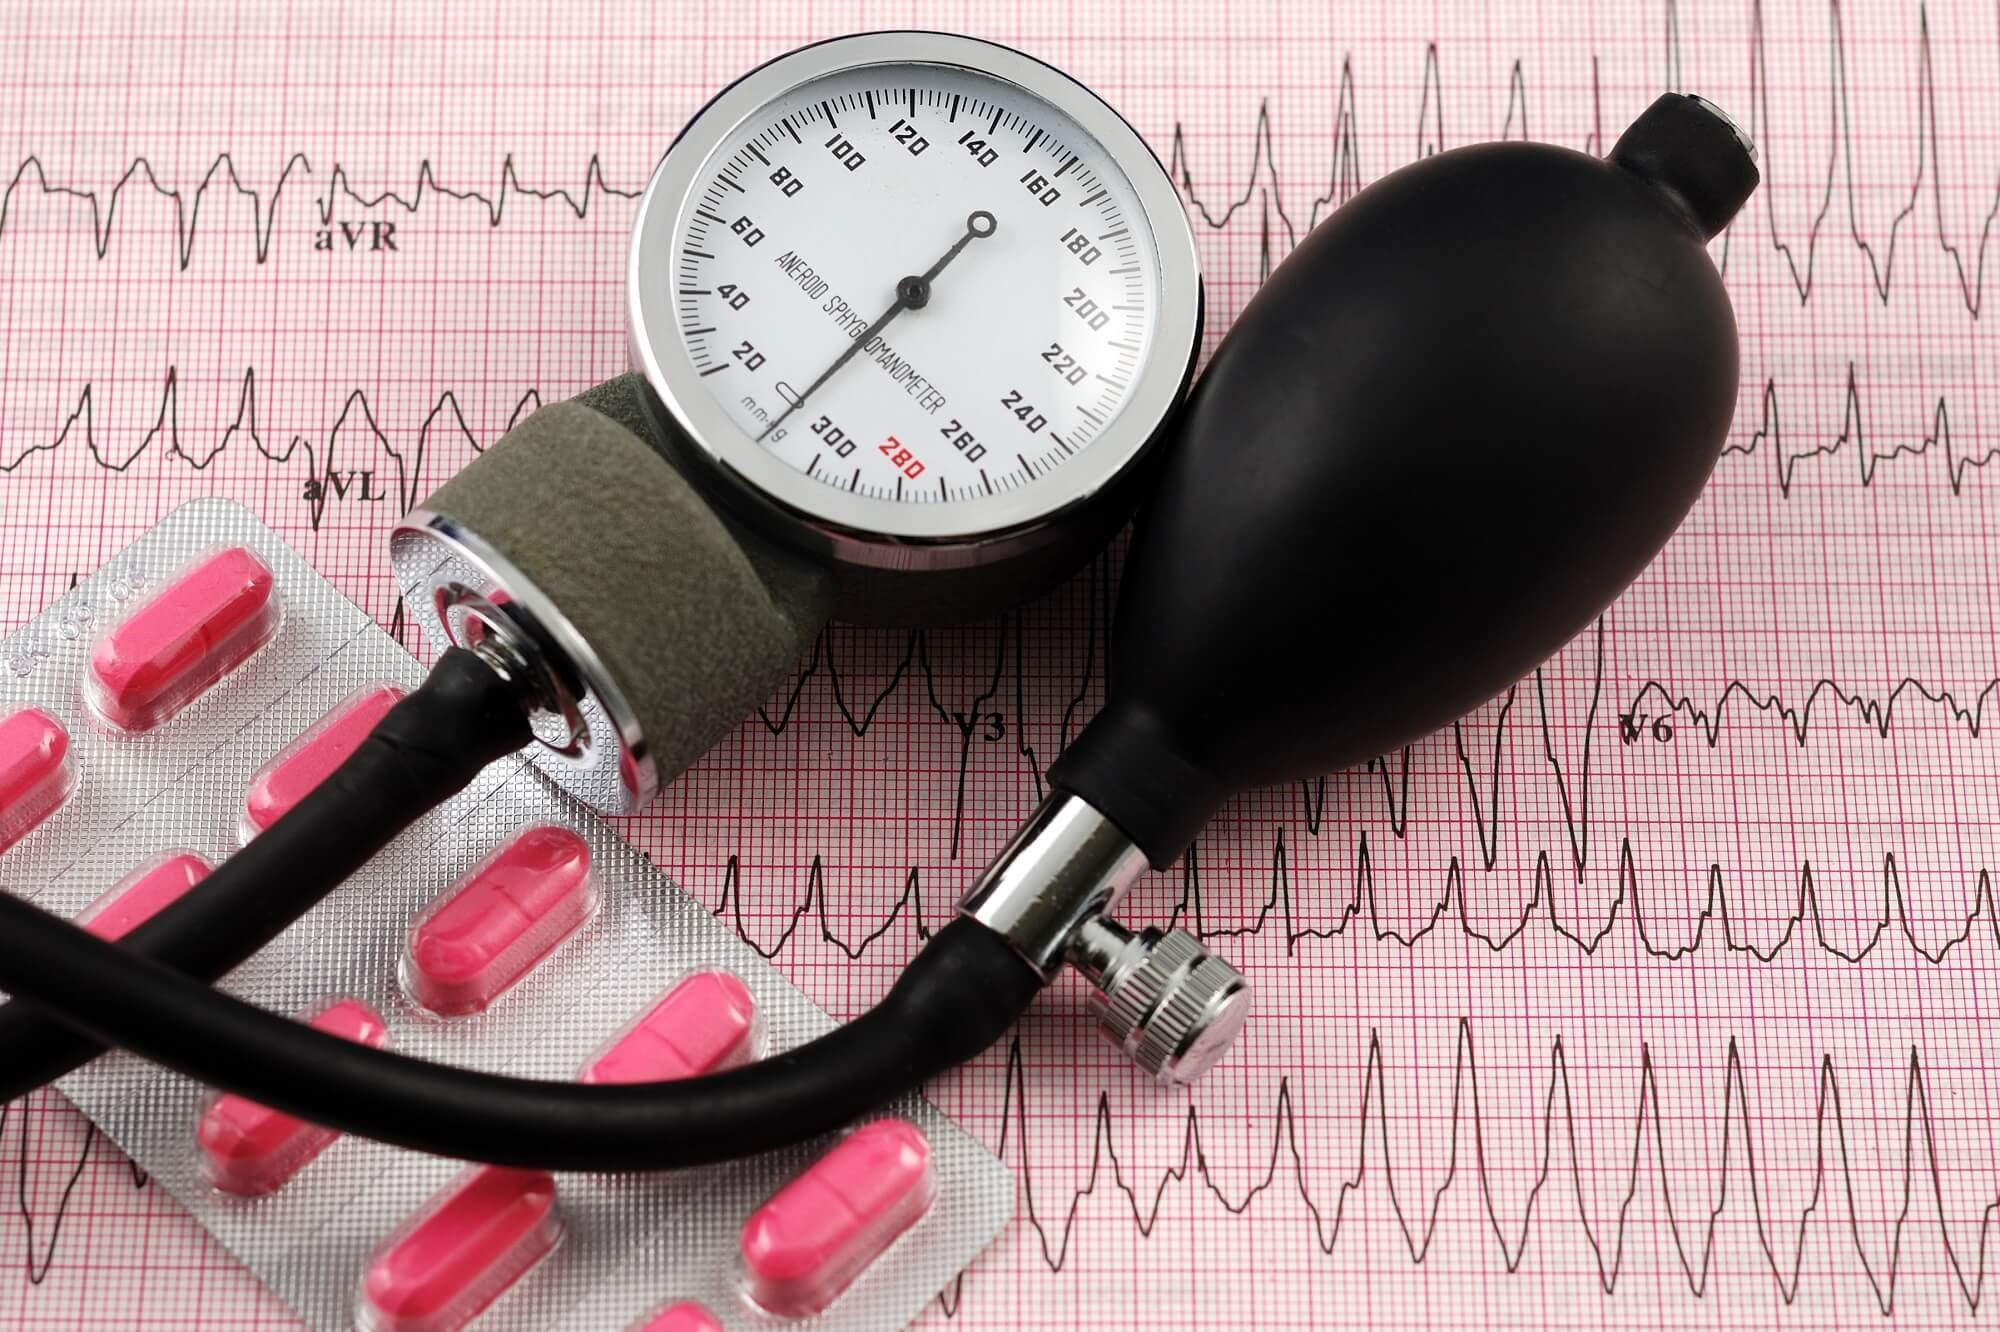 Treatment of low-risk patients with mild hypertension with antihypertensive medication should be done with caution.